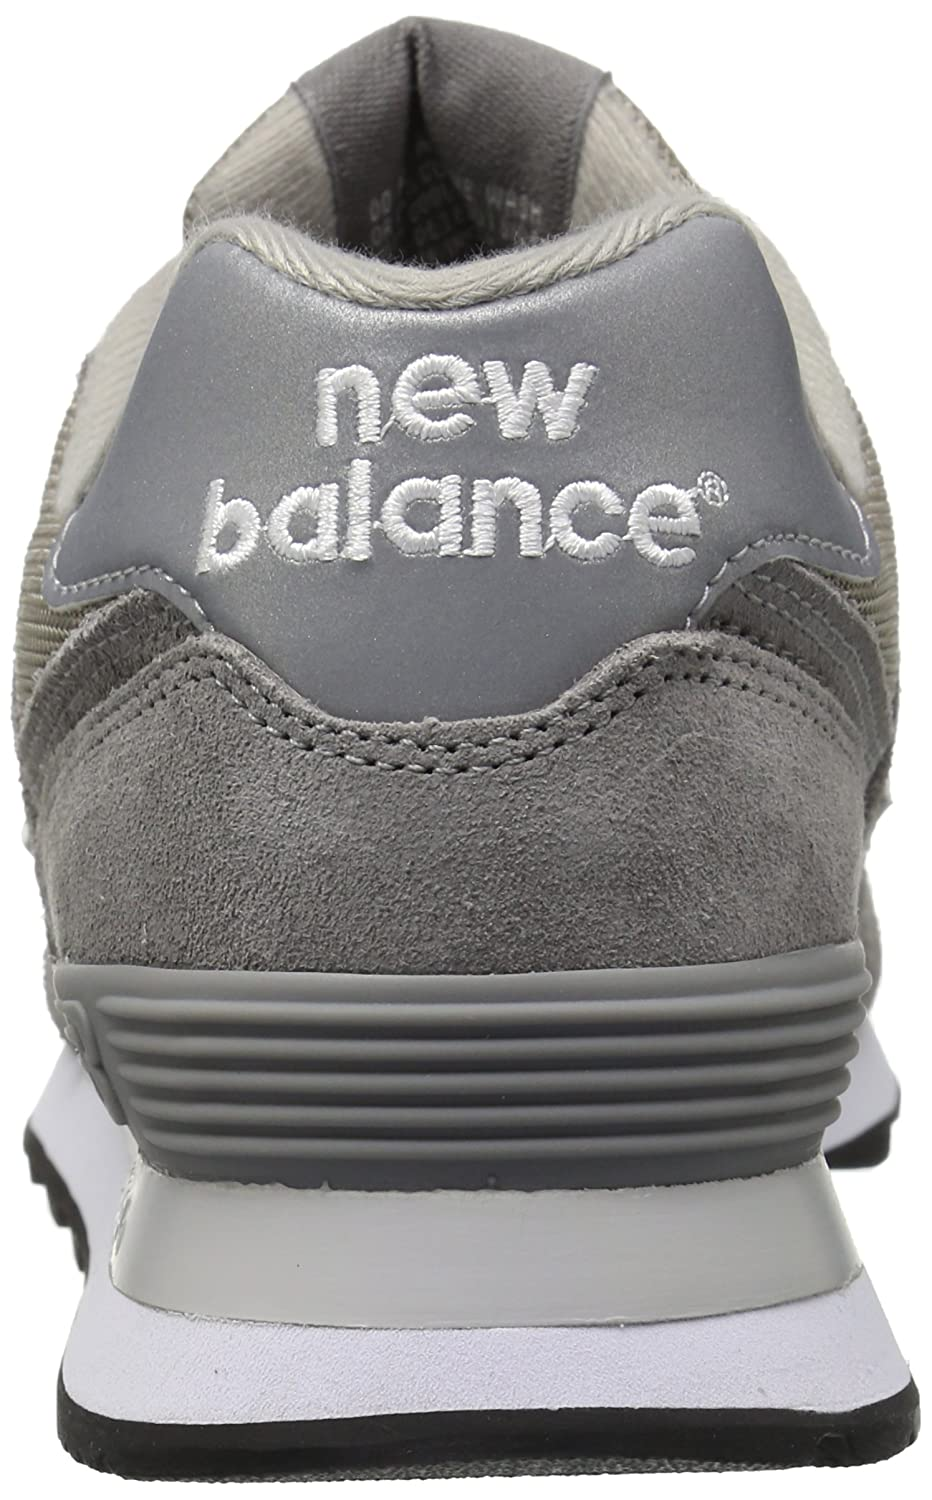 New Men's Running 574 Training 5 Shoesgrey14 Balance Eu Uk 50 8w0OknP